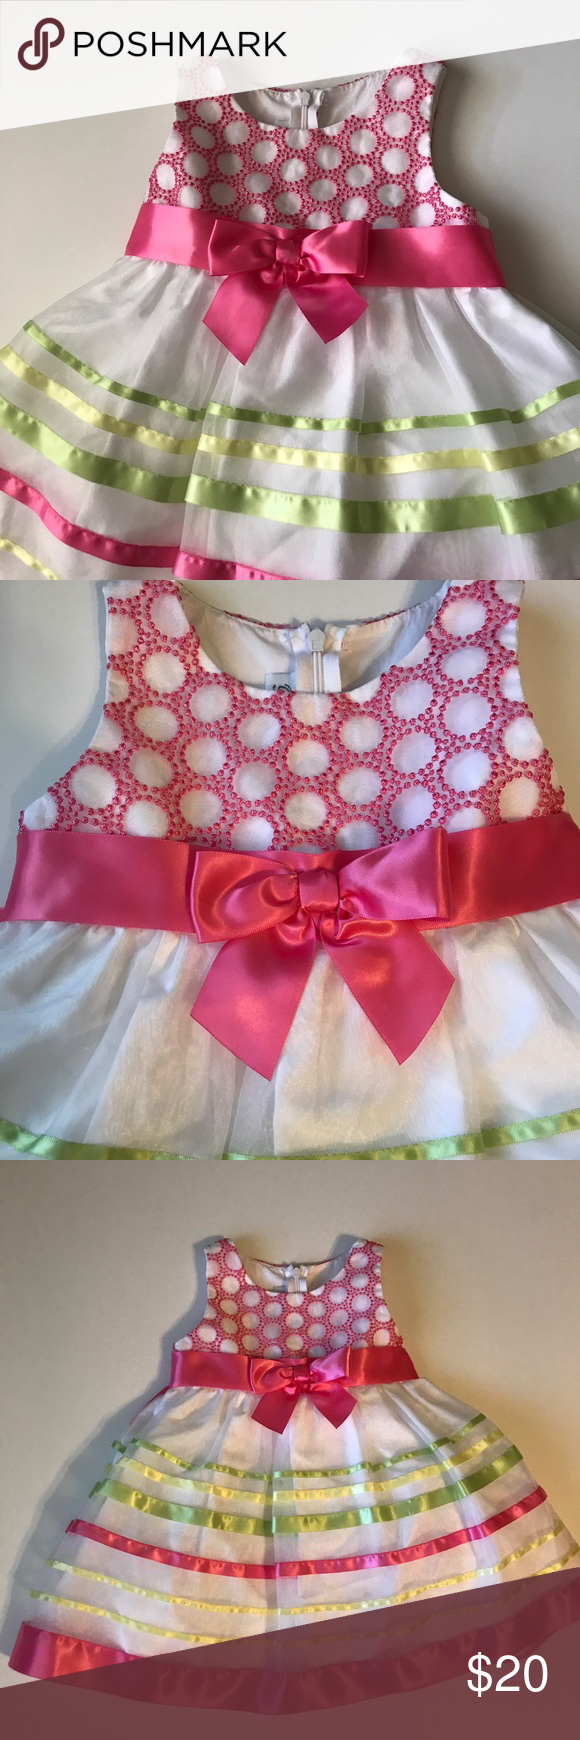 Bonnie Jean Pink, white, green dress with bow 2T Bonnie Jean Pink, white, green dress with bow 2T.  I have 2 of this dress. Both in excellent condition   ::::Bag118 Bonnie Jean Dresses Casual